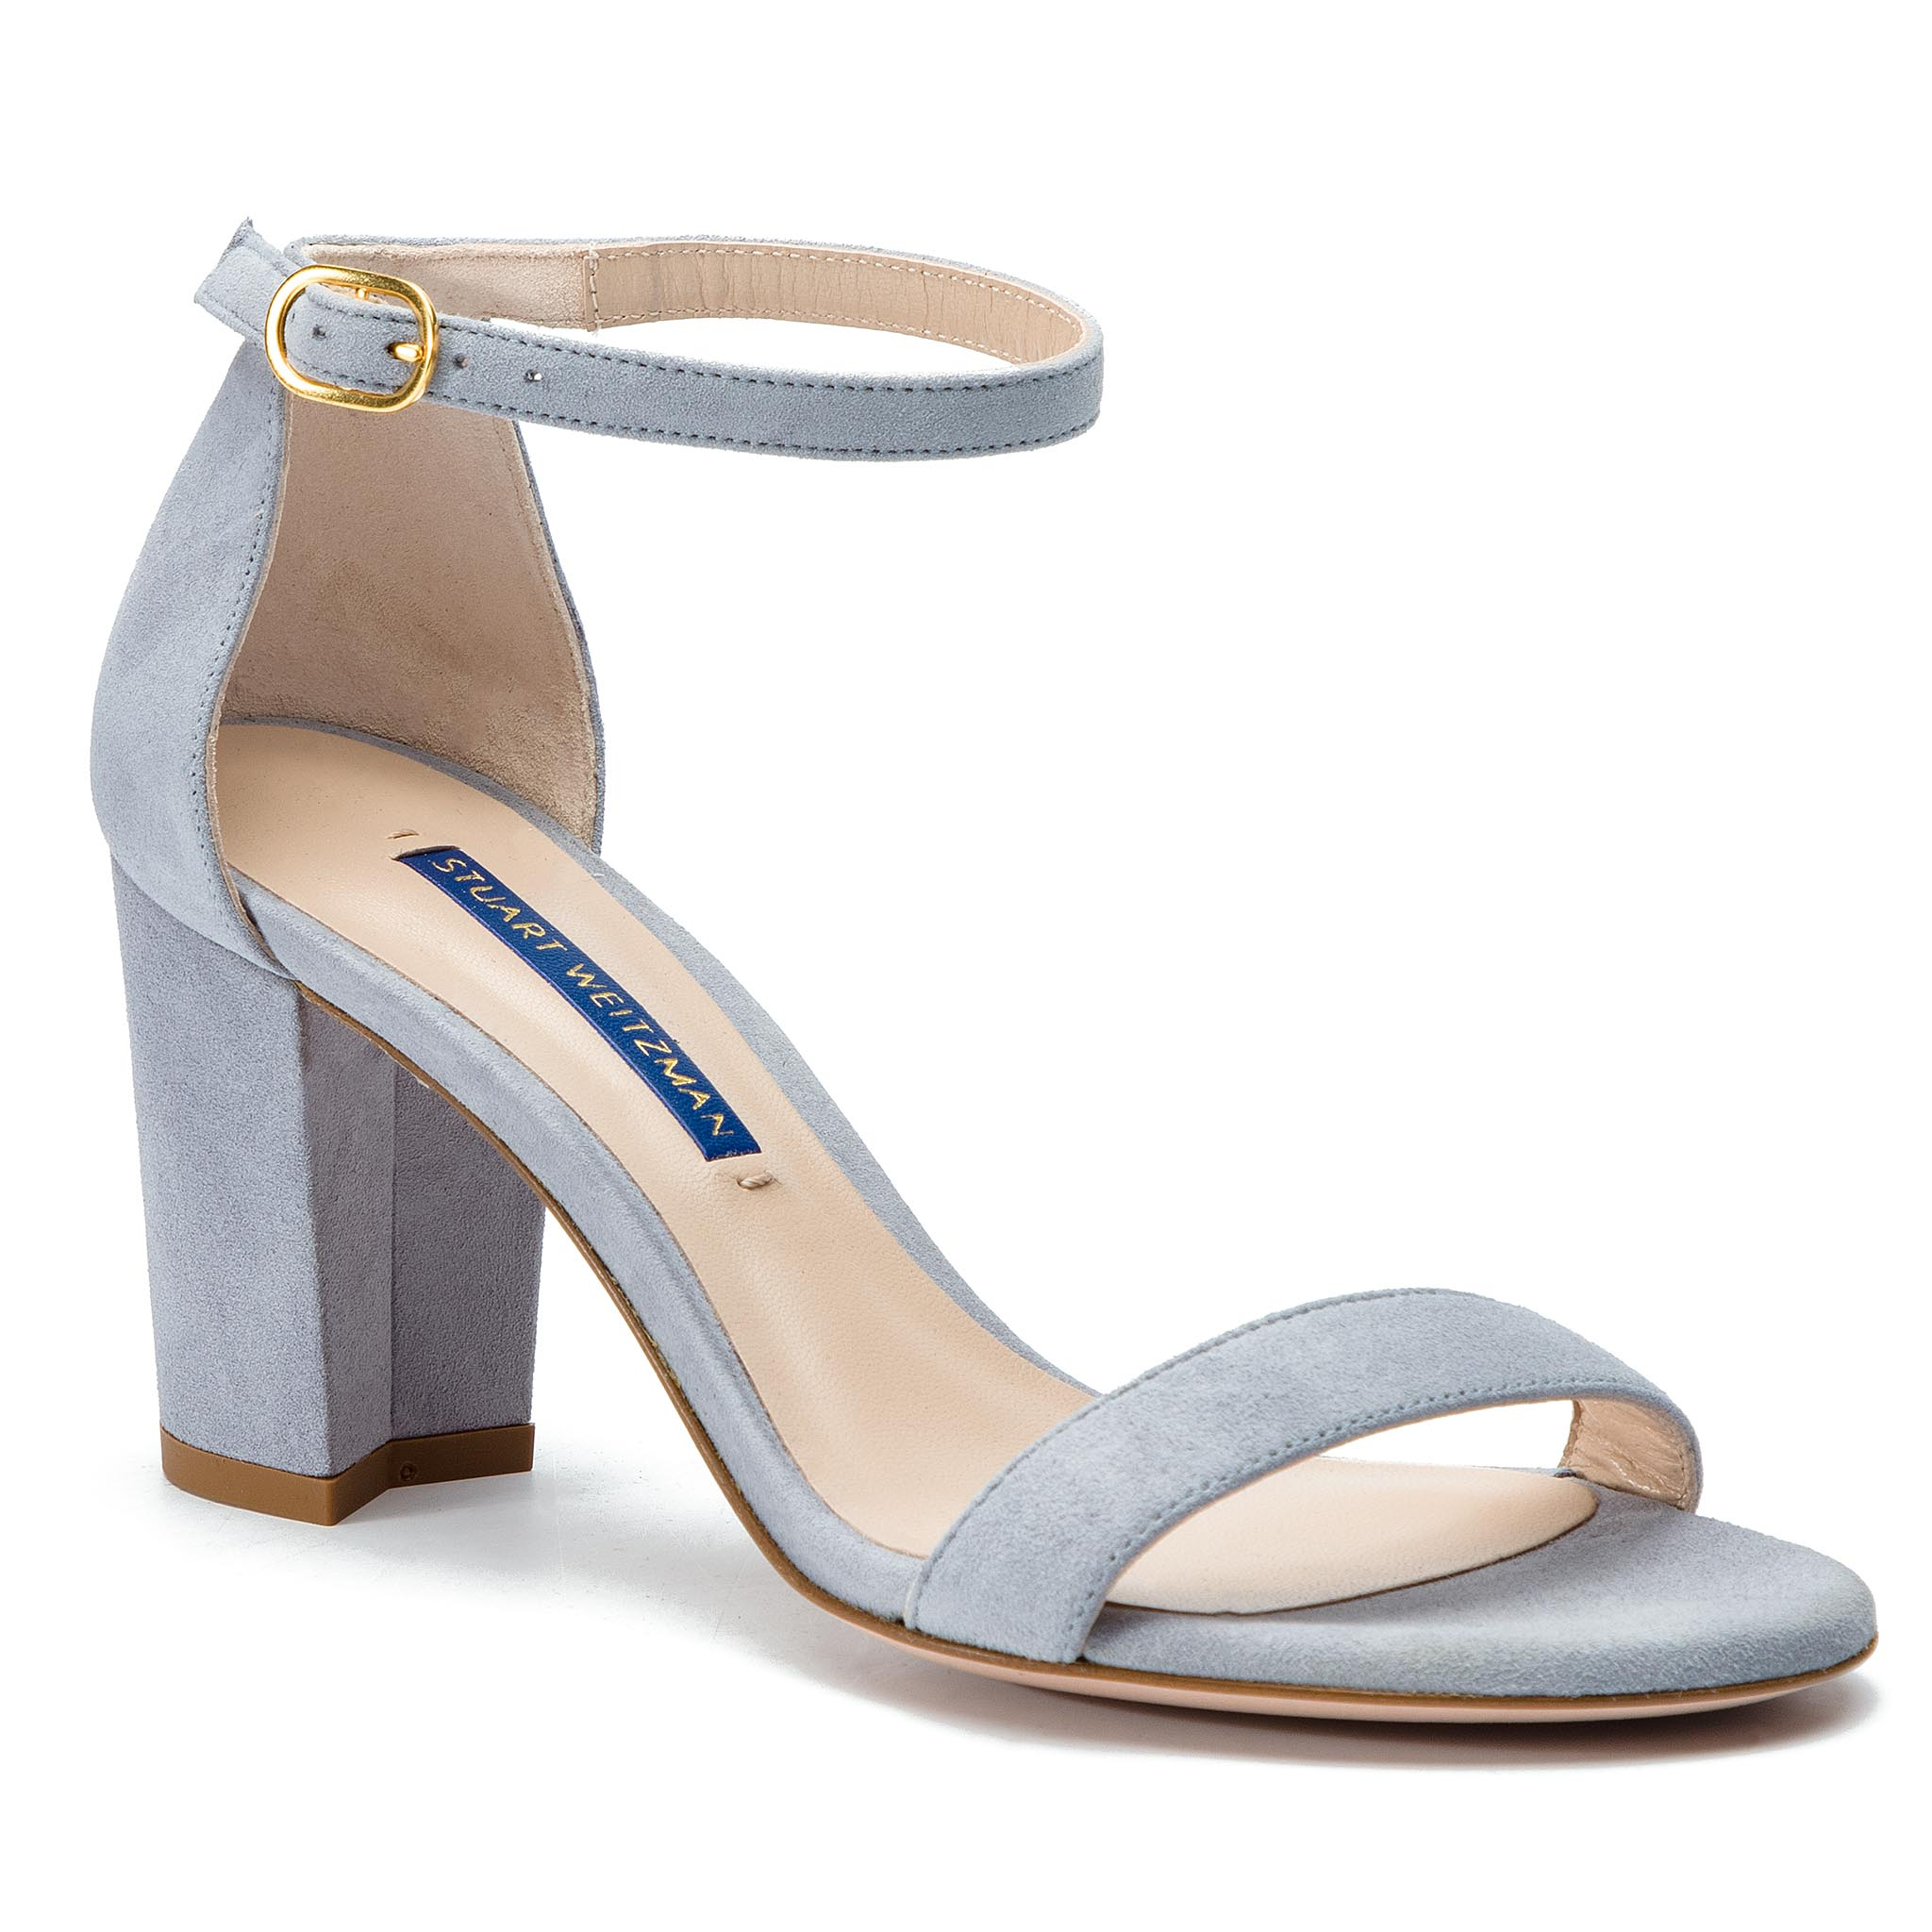 Sandale STUART WEITZMAN - Nearlynude ZL37407 Dovetail Suede